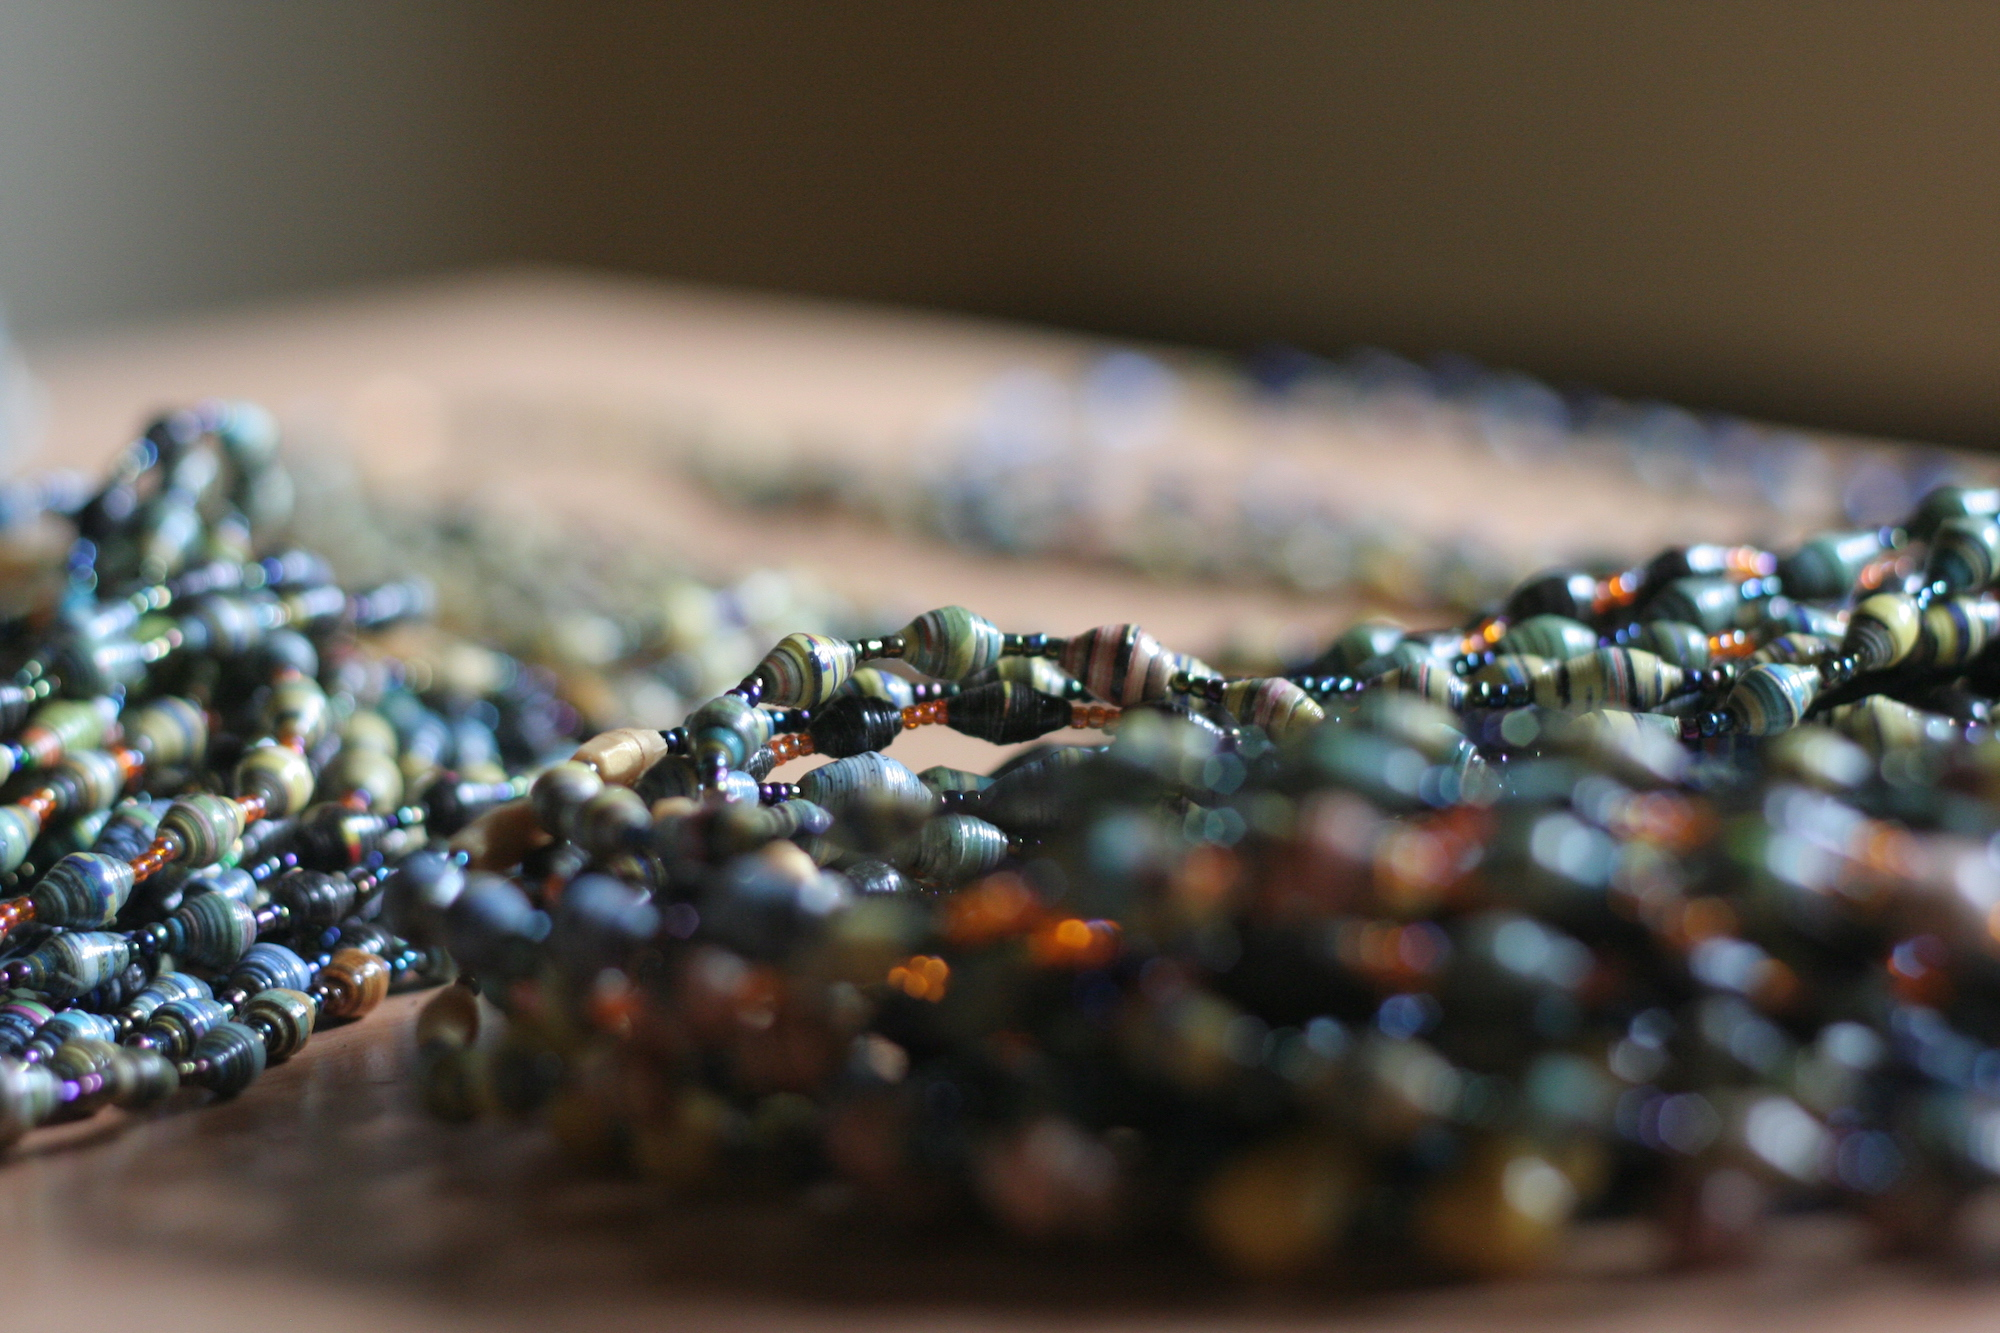 Close up of beads